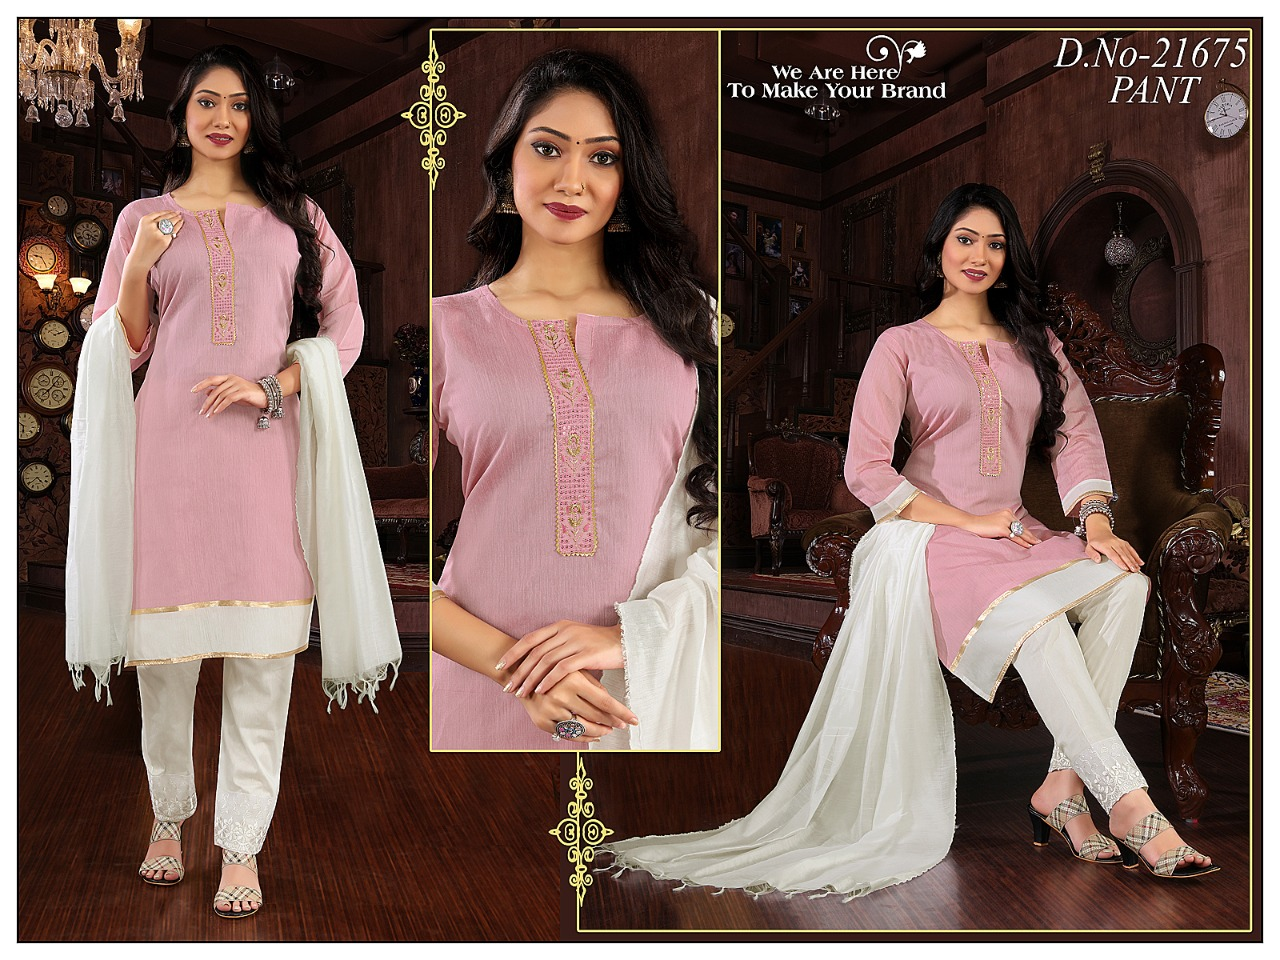 Simran Design No 21675 Colour Chart Readymade Pant Style Suits Catalog Lowest Price